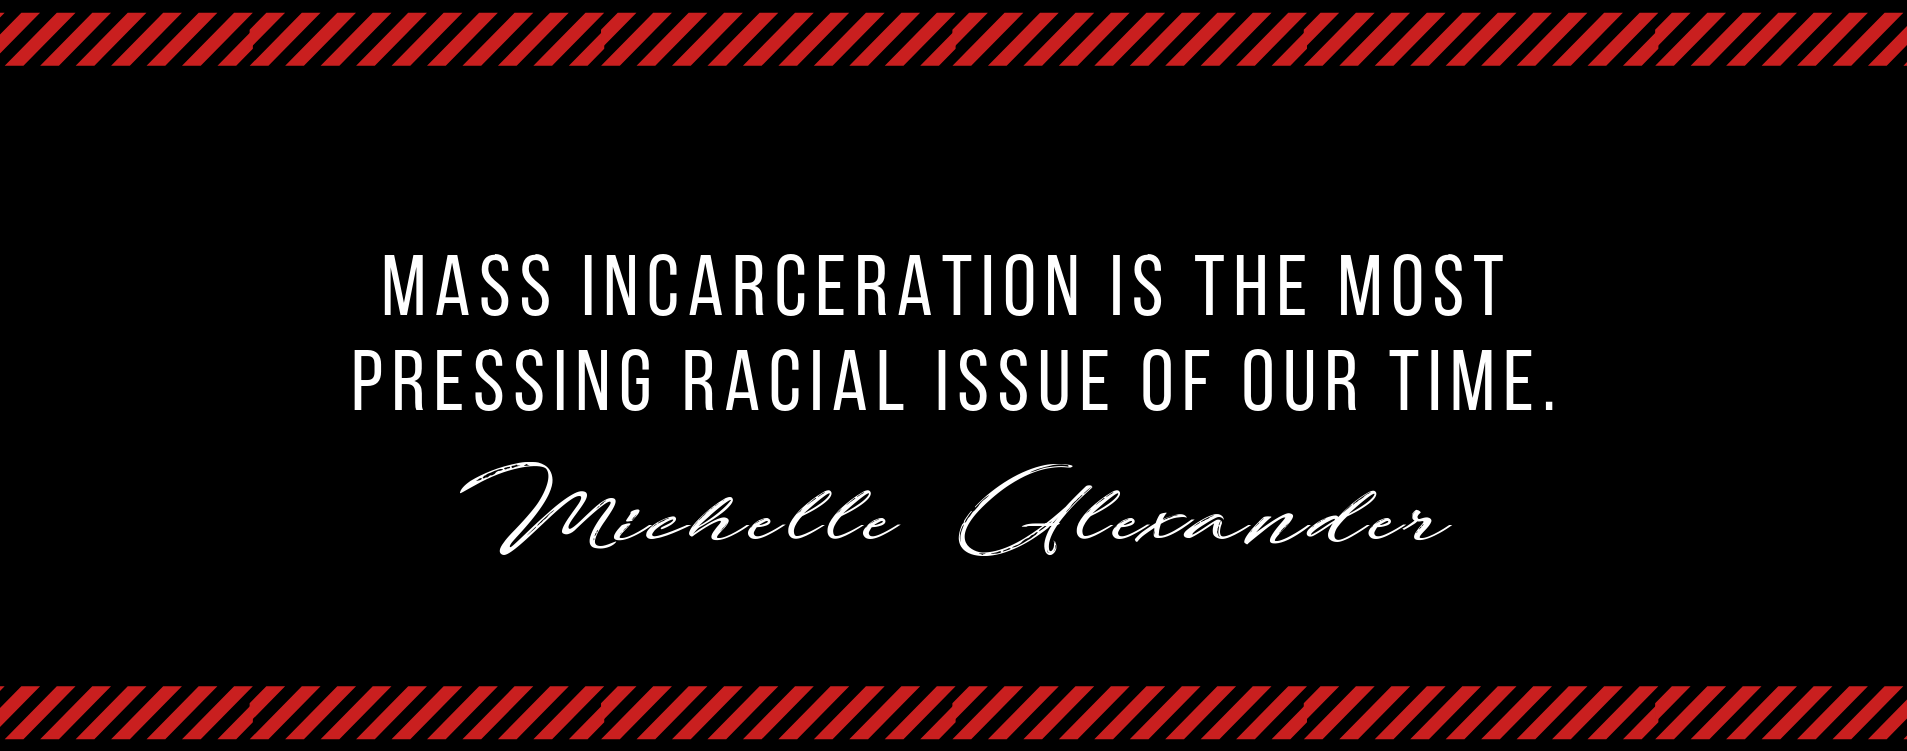 MASS INCARCERATION IS THE MOST PRESSING RACIAL ISSUE OF OUR TIME..png